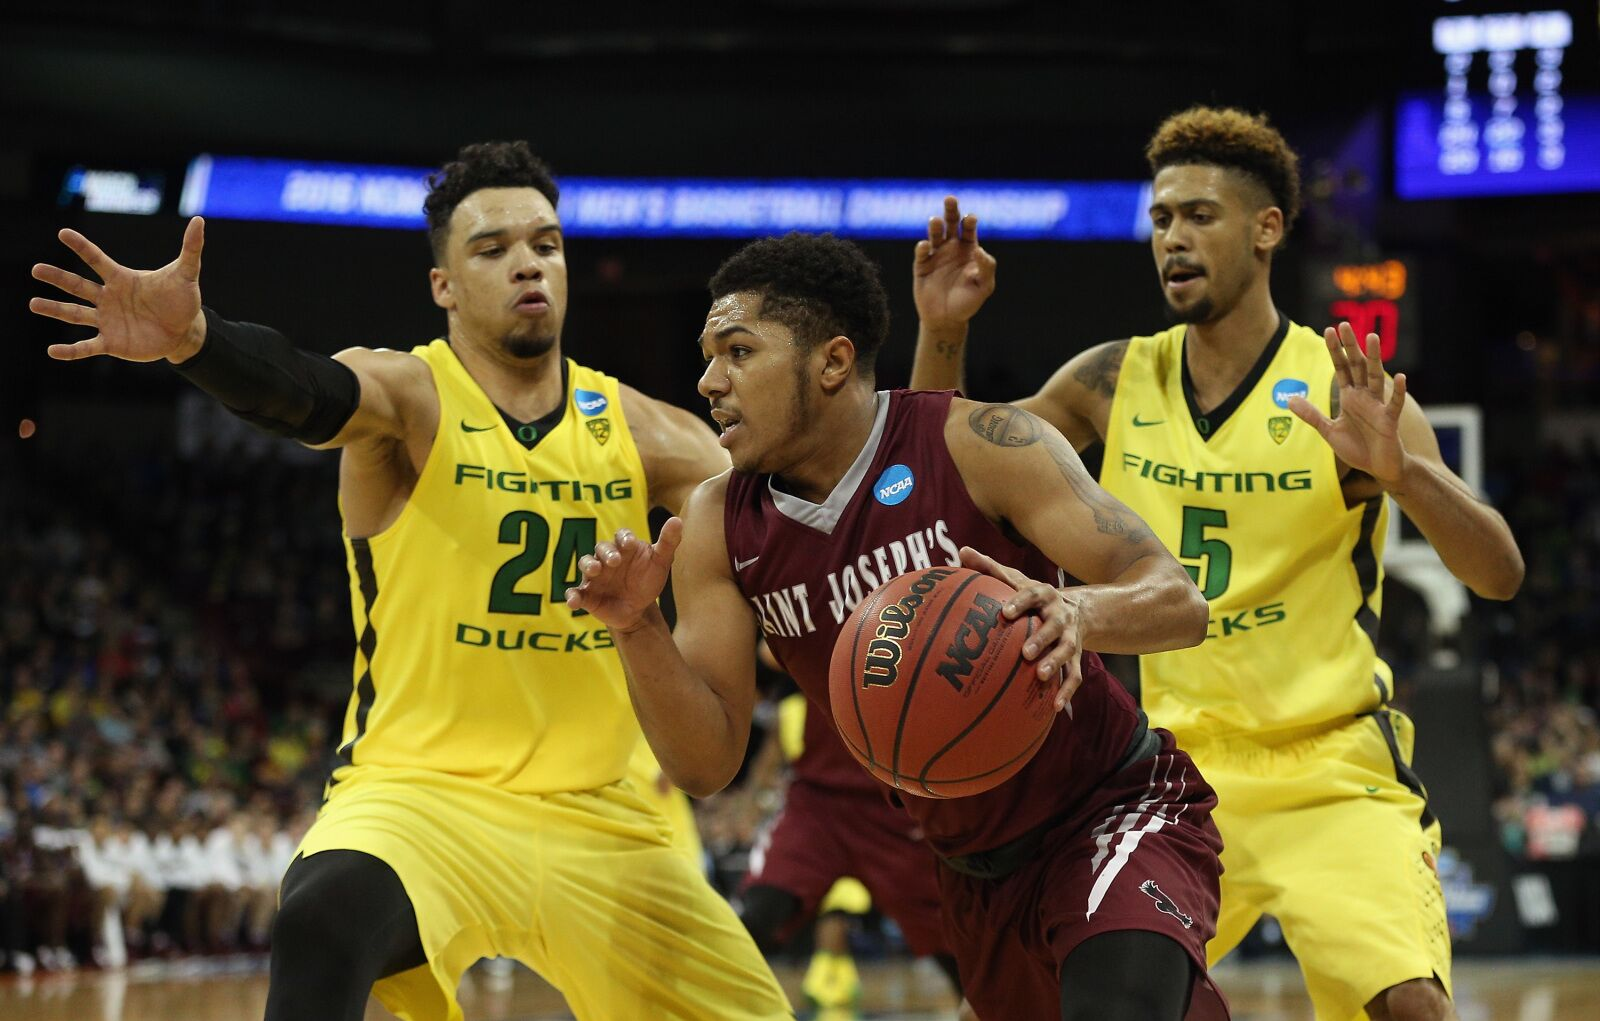 SPOKANE, WA - MARCH 20: Lamarr Kimble #0 of the Saint Joseph's Hawks drives against Dillon Brooks #24 and Tyler Dorsey #5 of the Oregon Ducks in the second half during the second round of the 2016 NCAA Men's Basketball Tournament at Spokane Veterans Memorial Arena on March 20, 2016 in Spokane, Washington. (Photo by Patrick Smith/Getty Images)